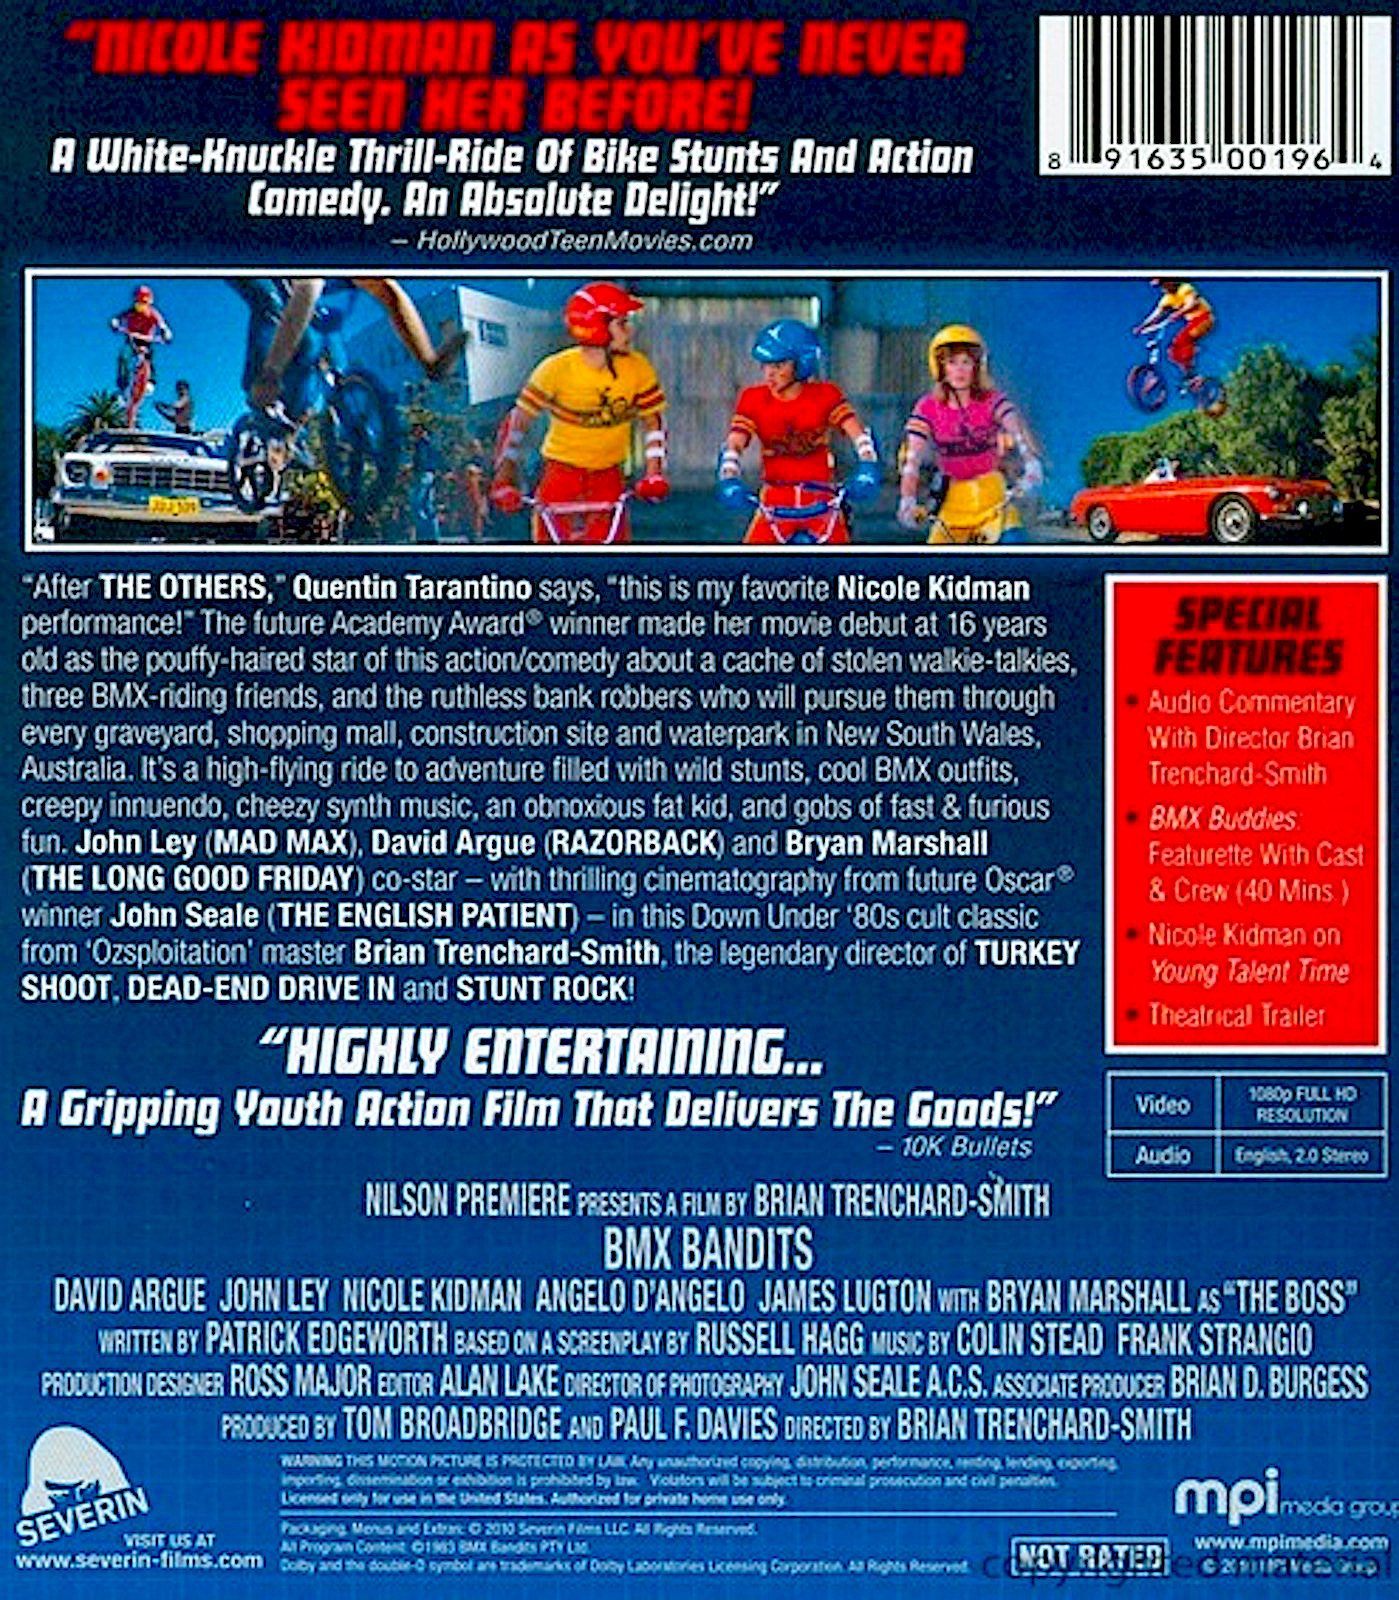 Blu-ray And Dvd Covers: SEVERIN AND INTERVISION BLU-RAYS